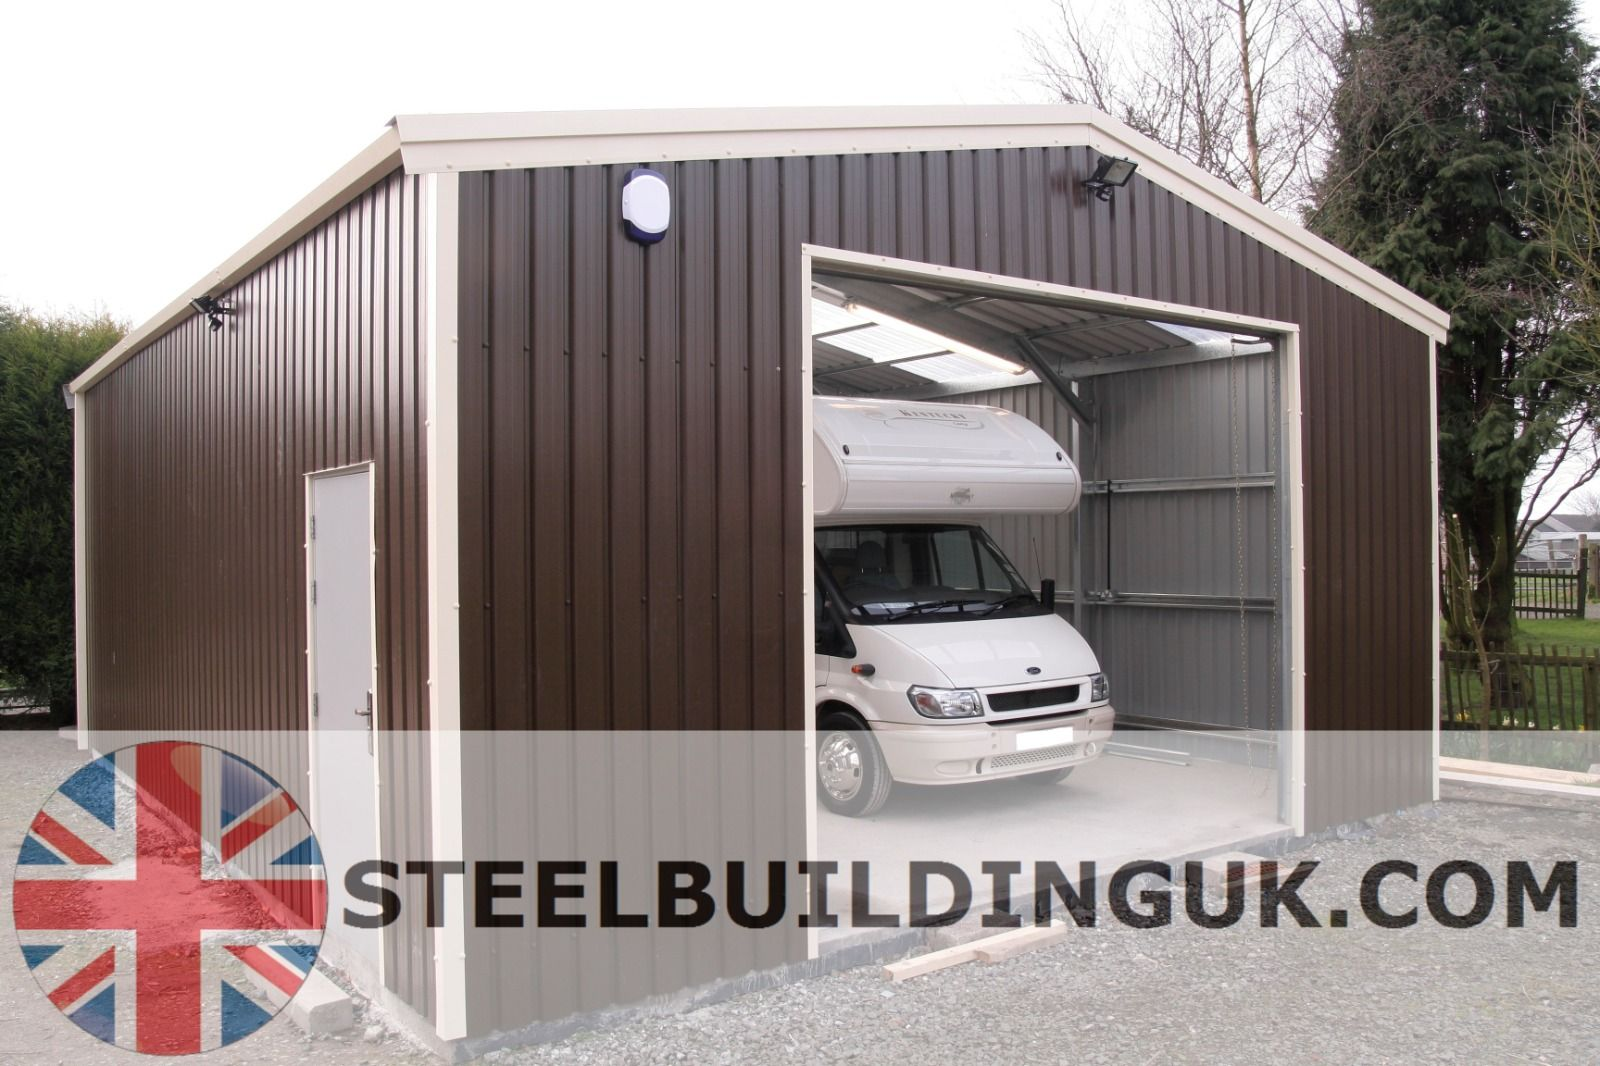 Steel Frame Building Kits Uk - Photo Frames & Pictures Design ...